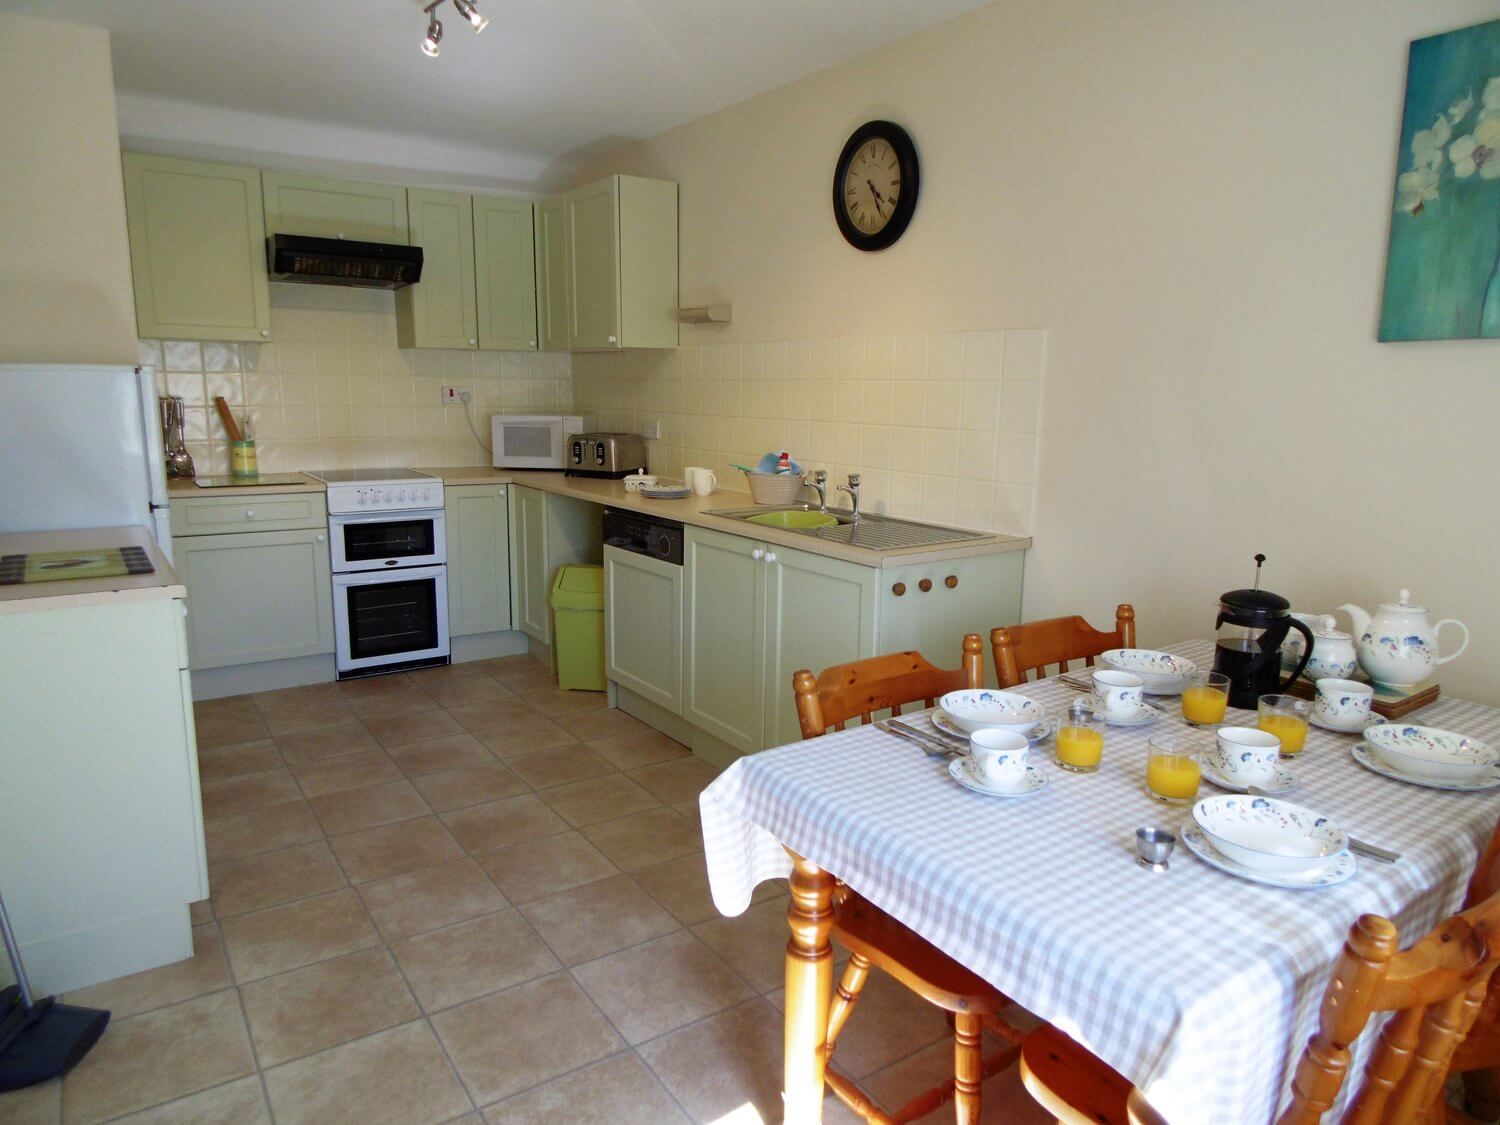 Two and three bedroom cottages - Larger cottages for families and friends.